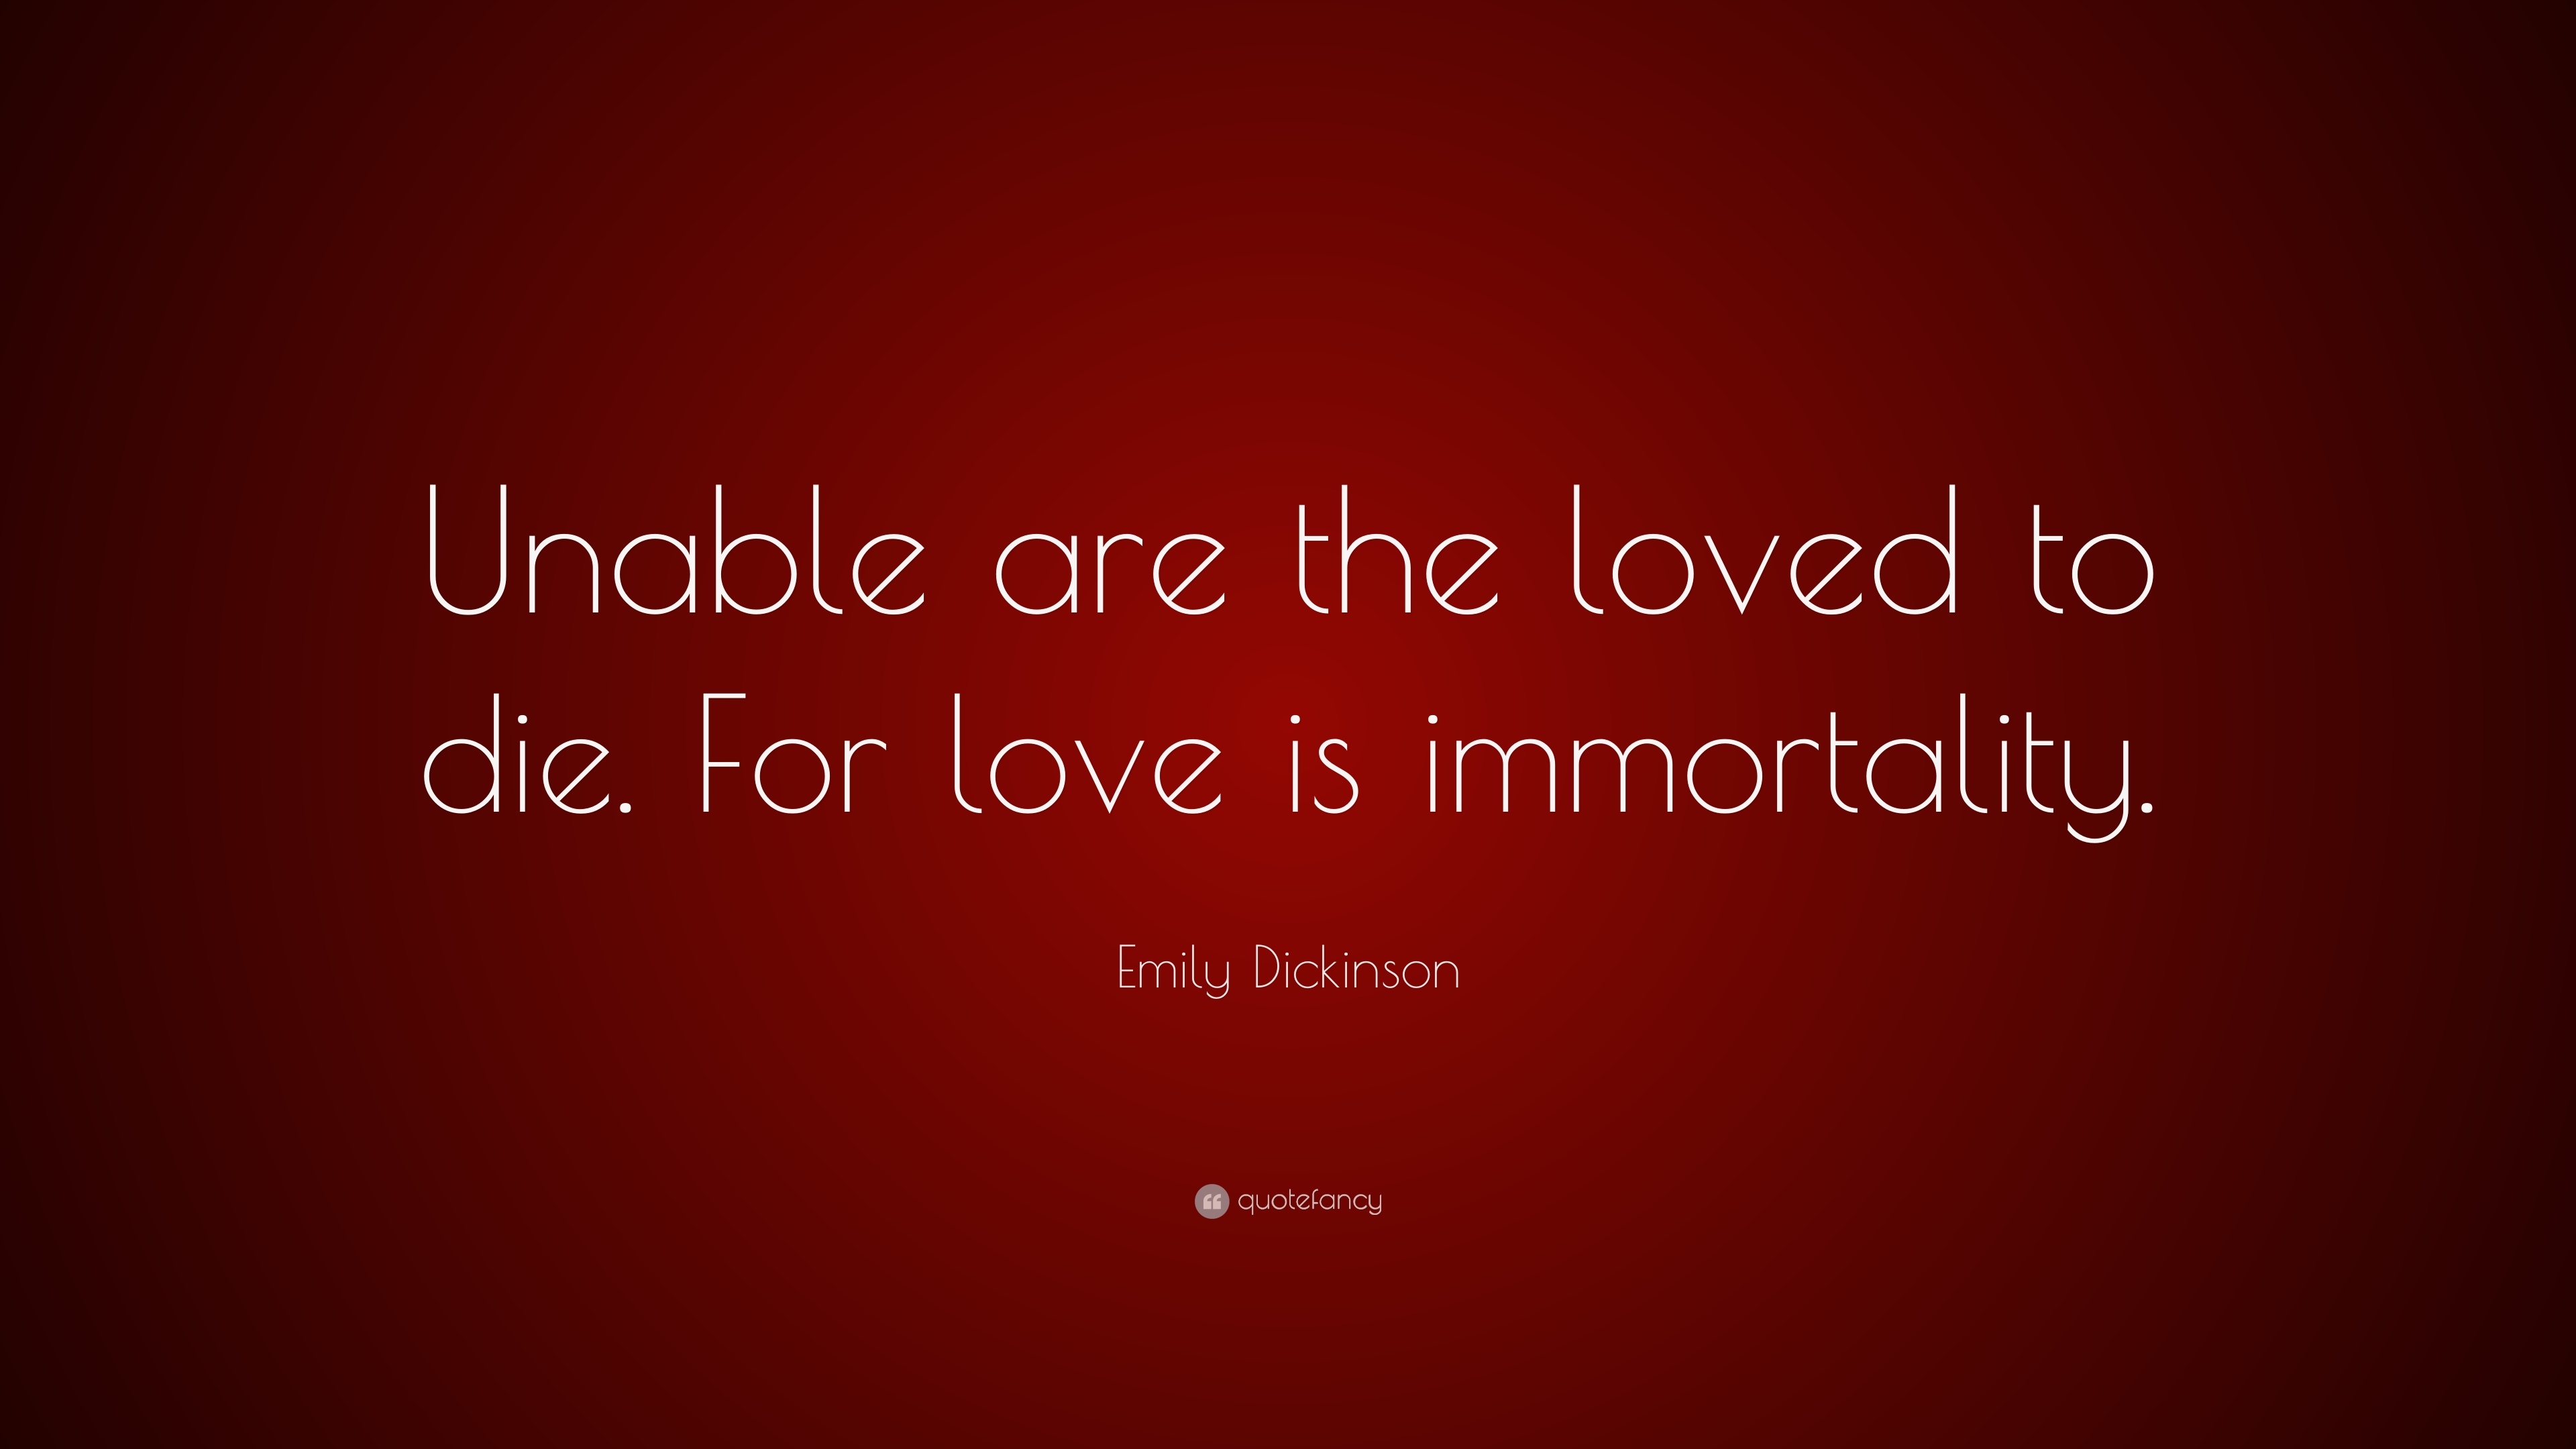 emily dickinson quote unable are the loved to die for